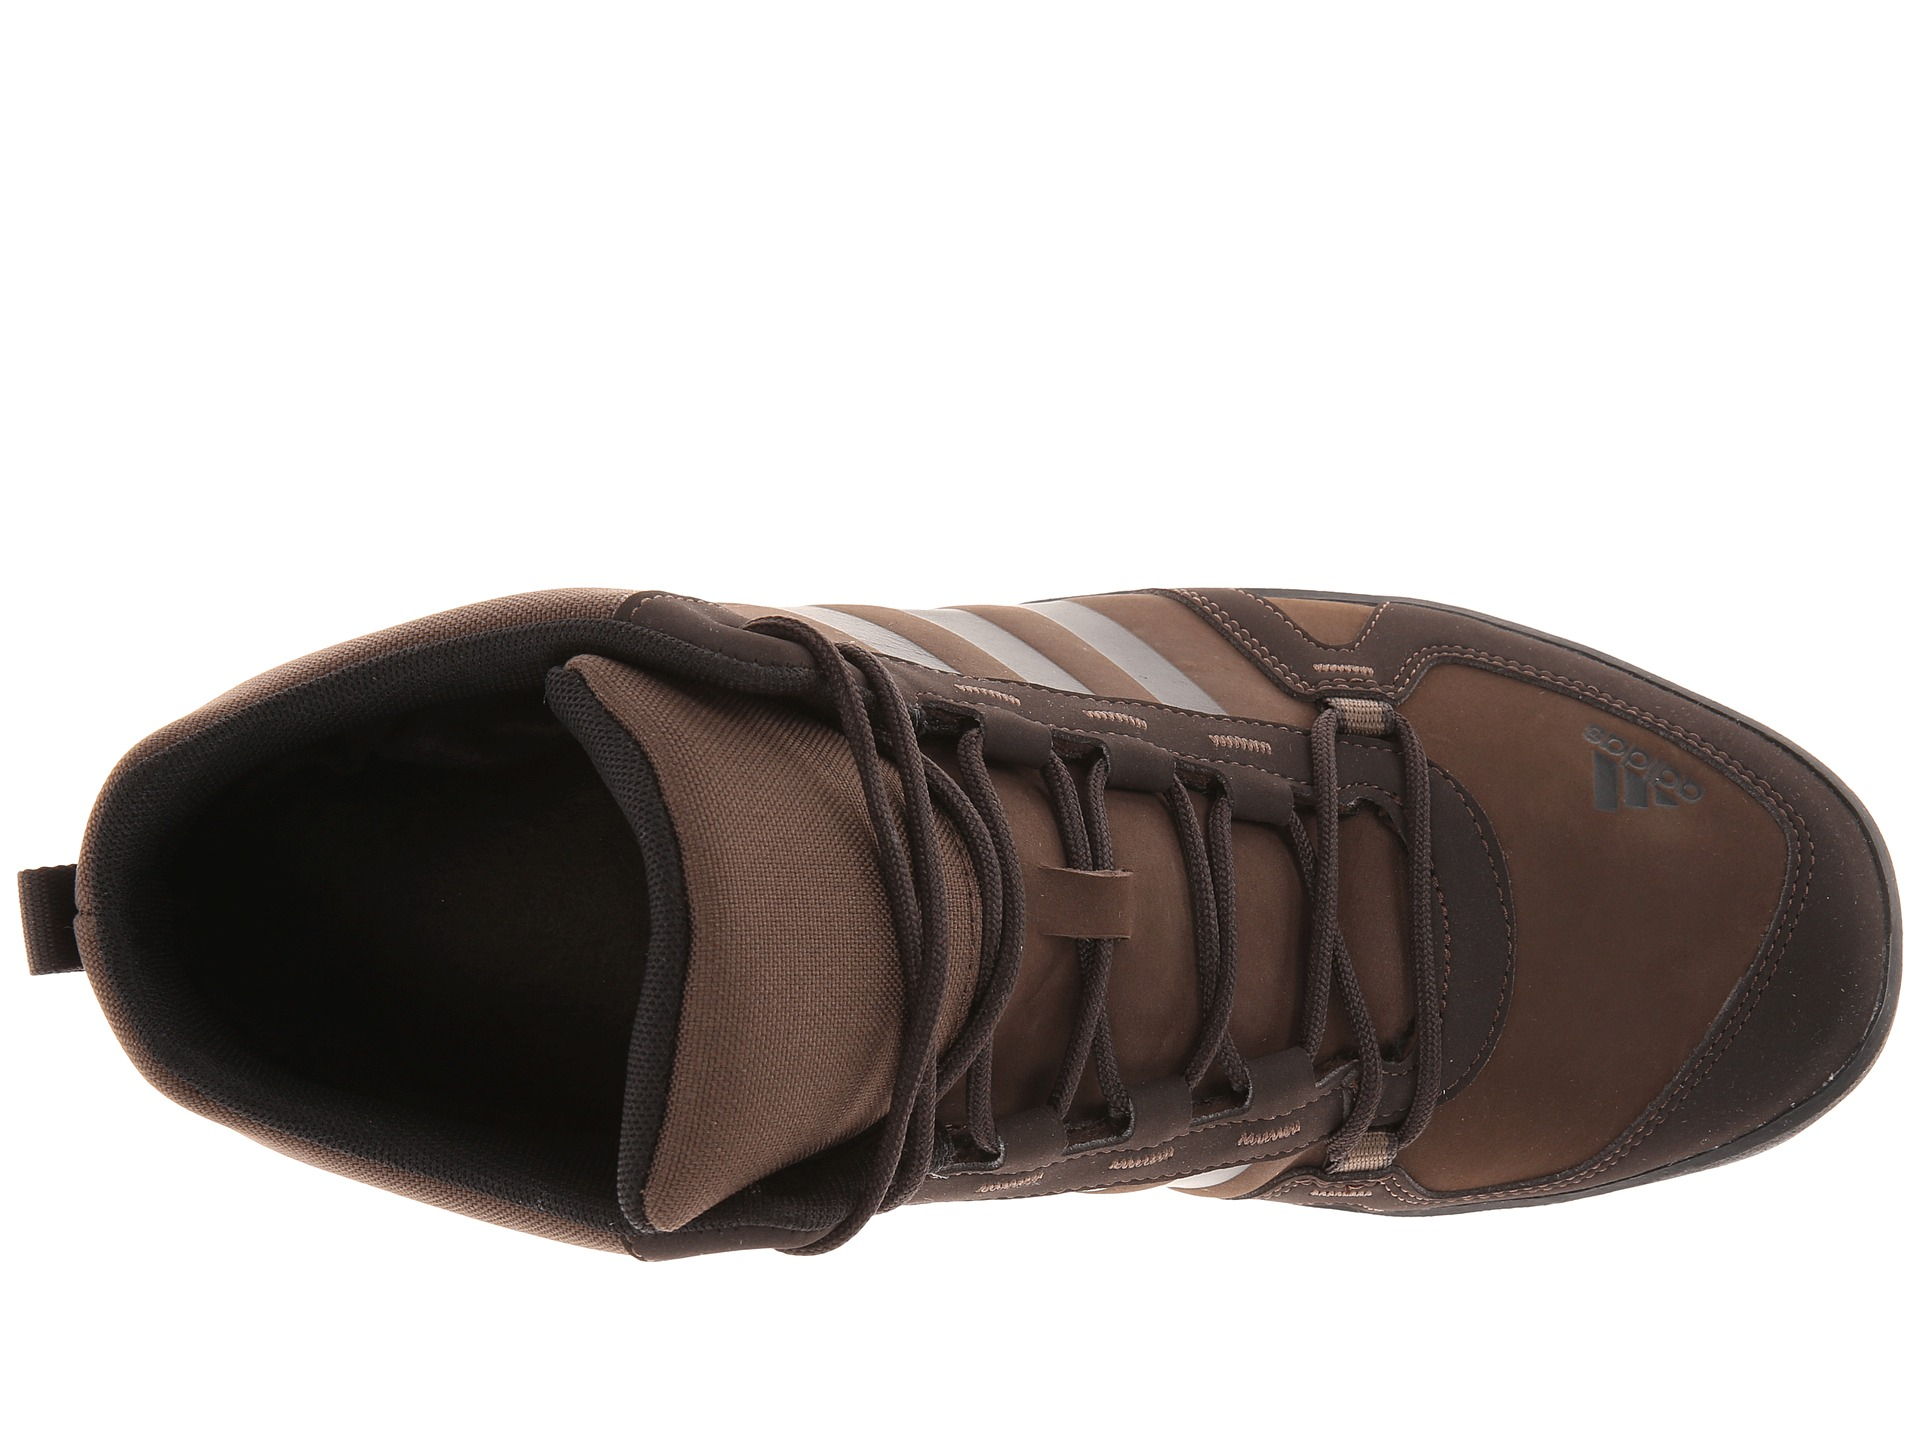 huge selection of 7409e 76e17 Lyst - adidas Daroga Mid Leather in Brown for Men